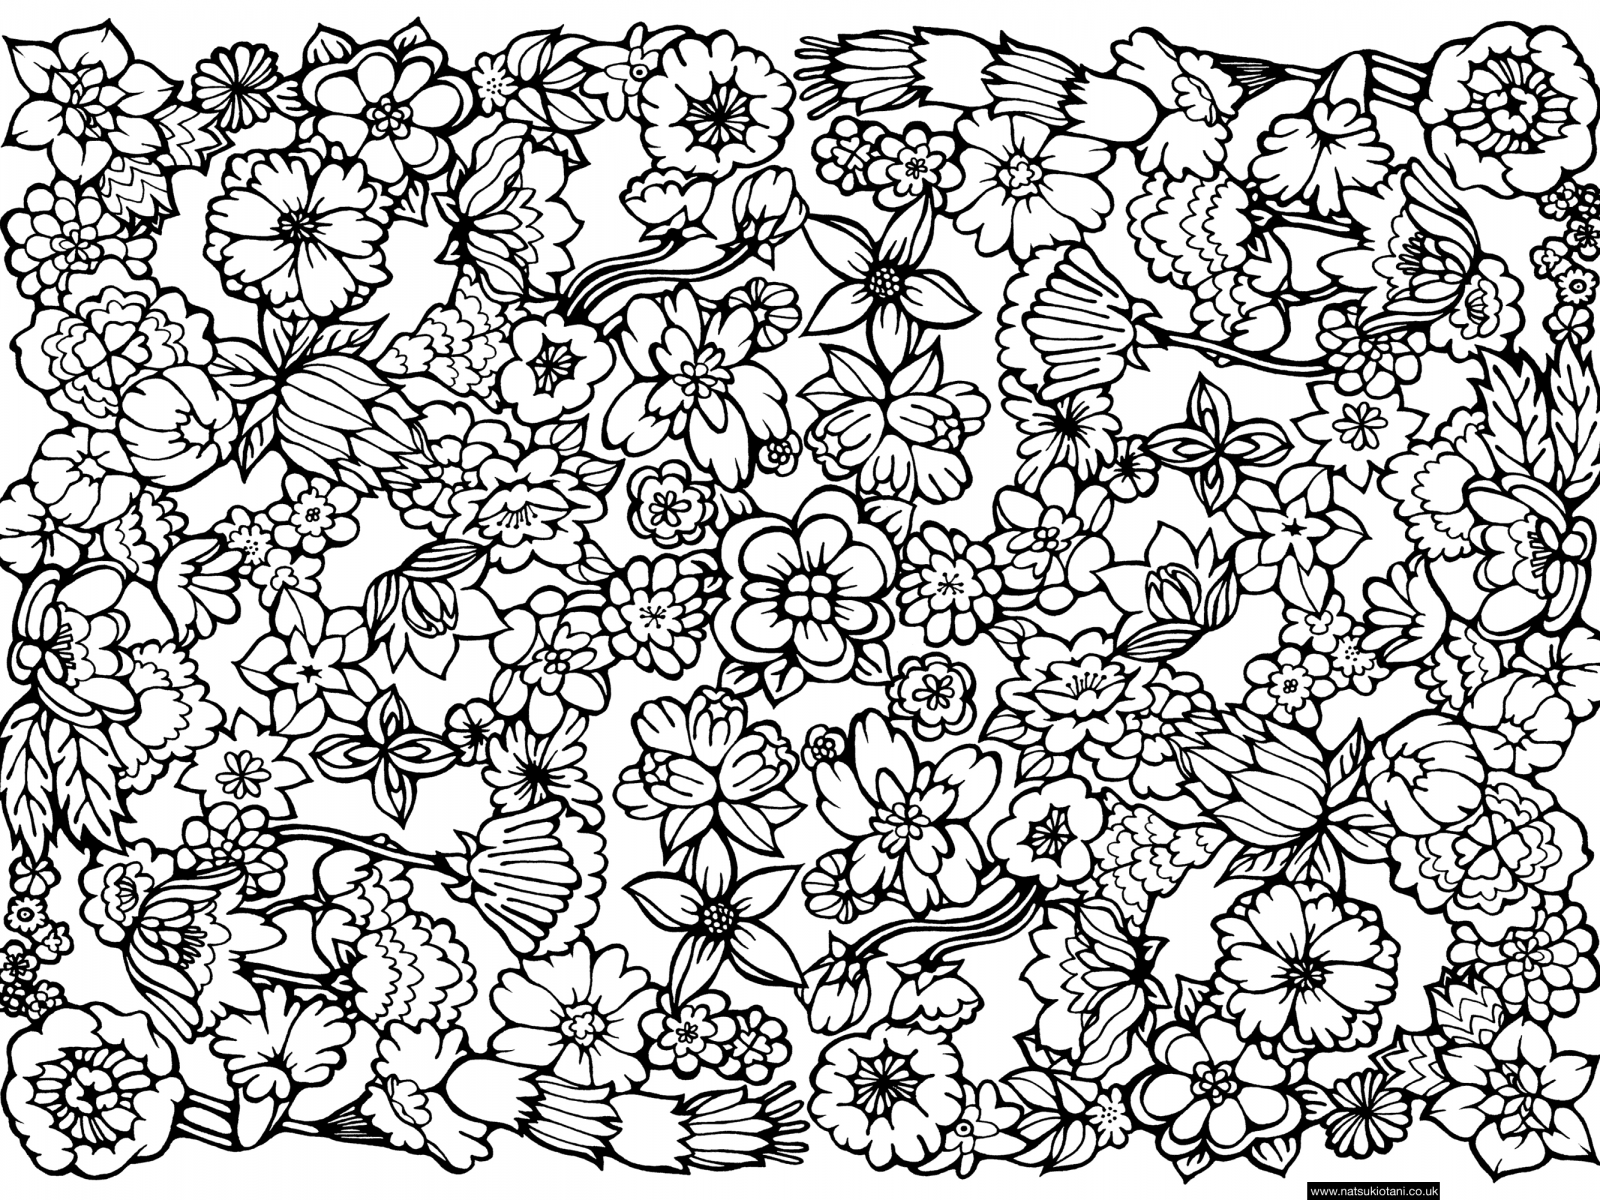 1600x1200 Geometric Patterns Coloring Pages Date Nights Free